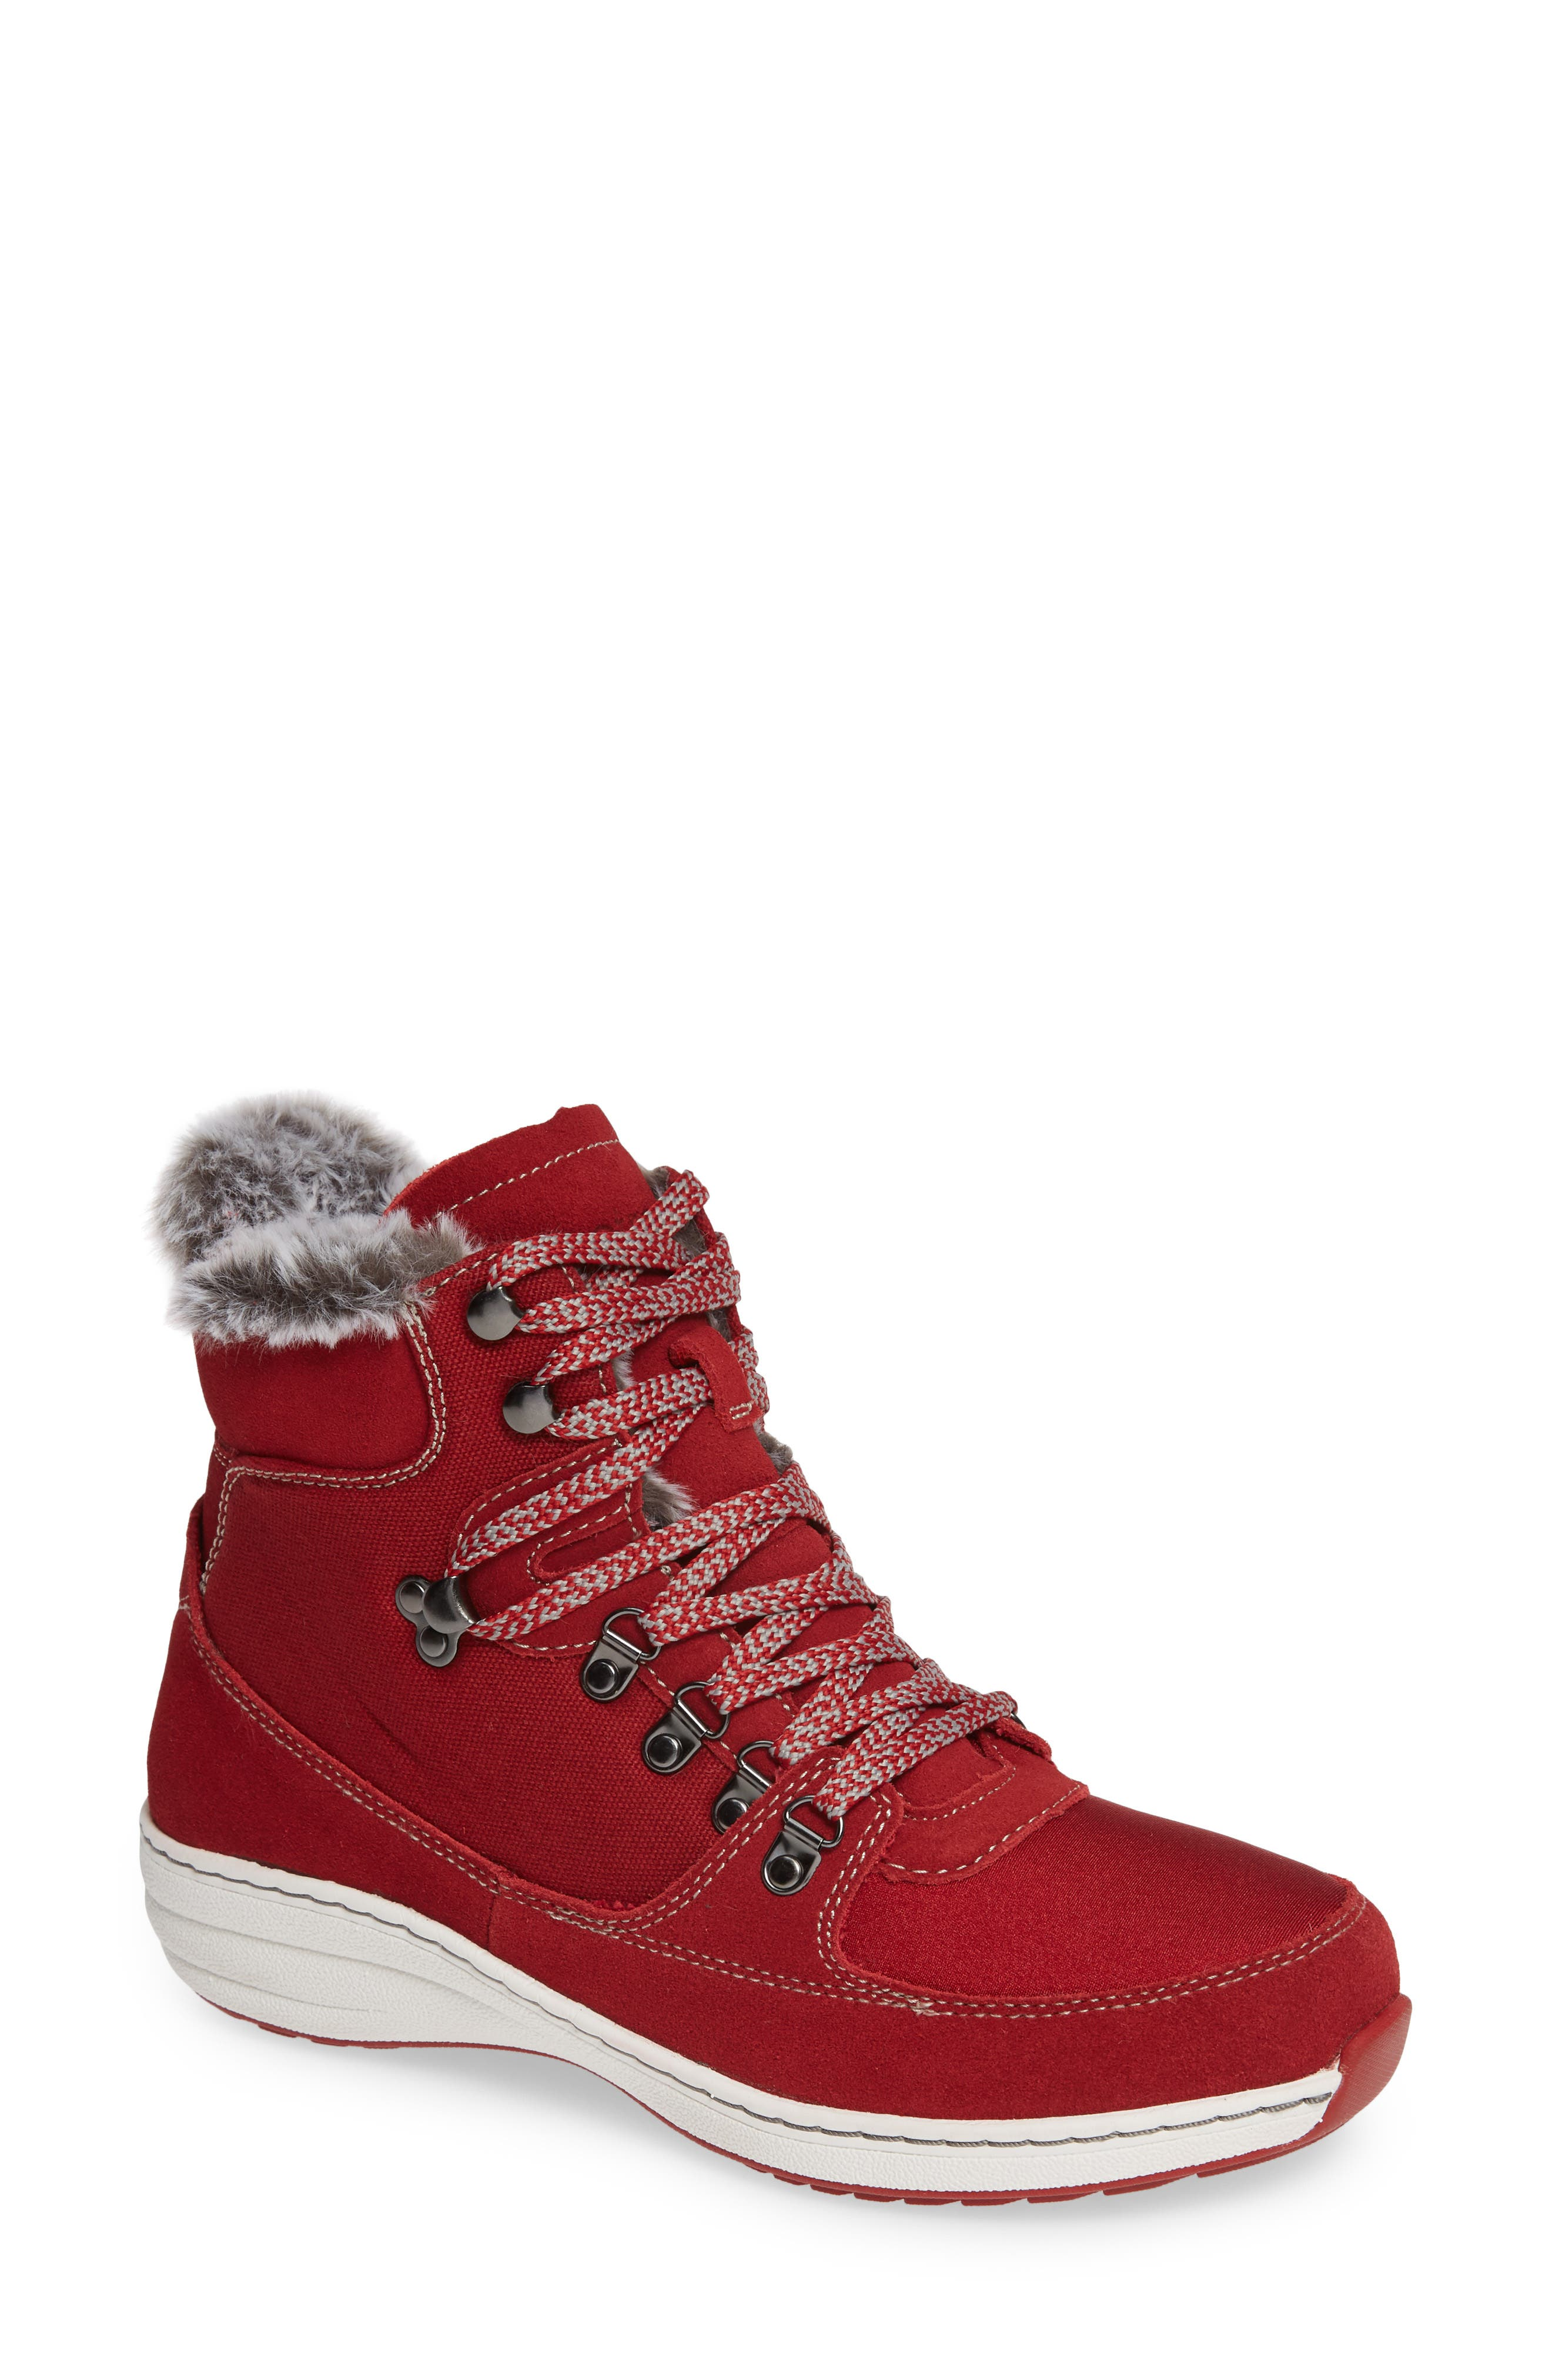 Aetrex Kelsey Faux Fur Lined Hiker Boot - Red